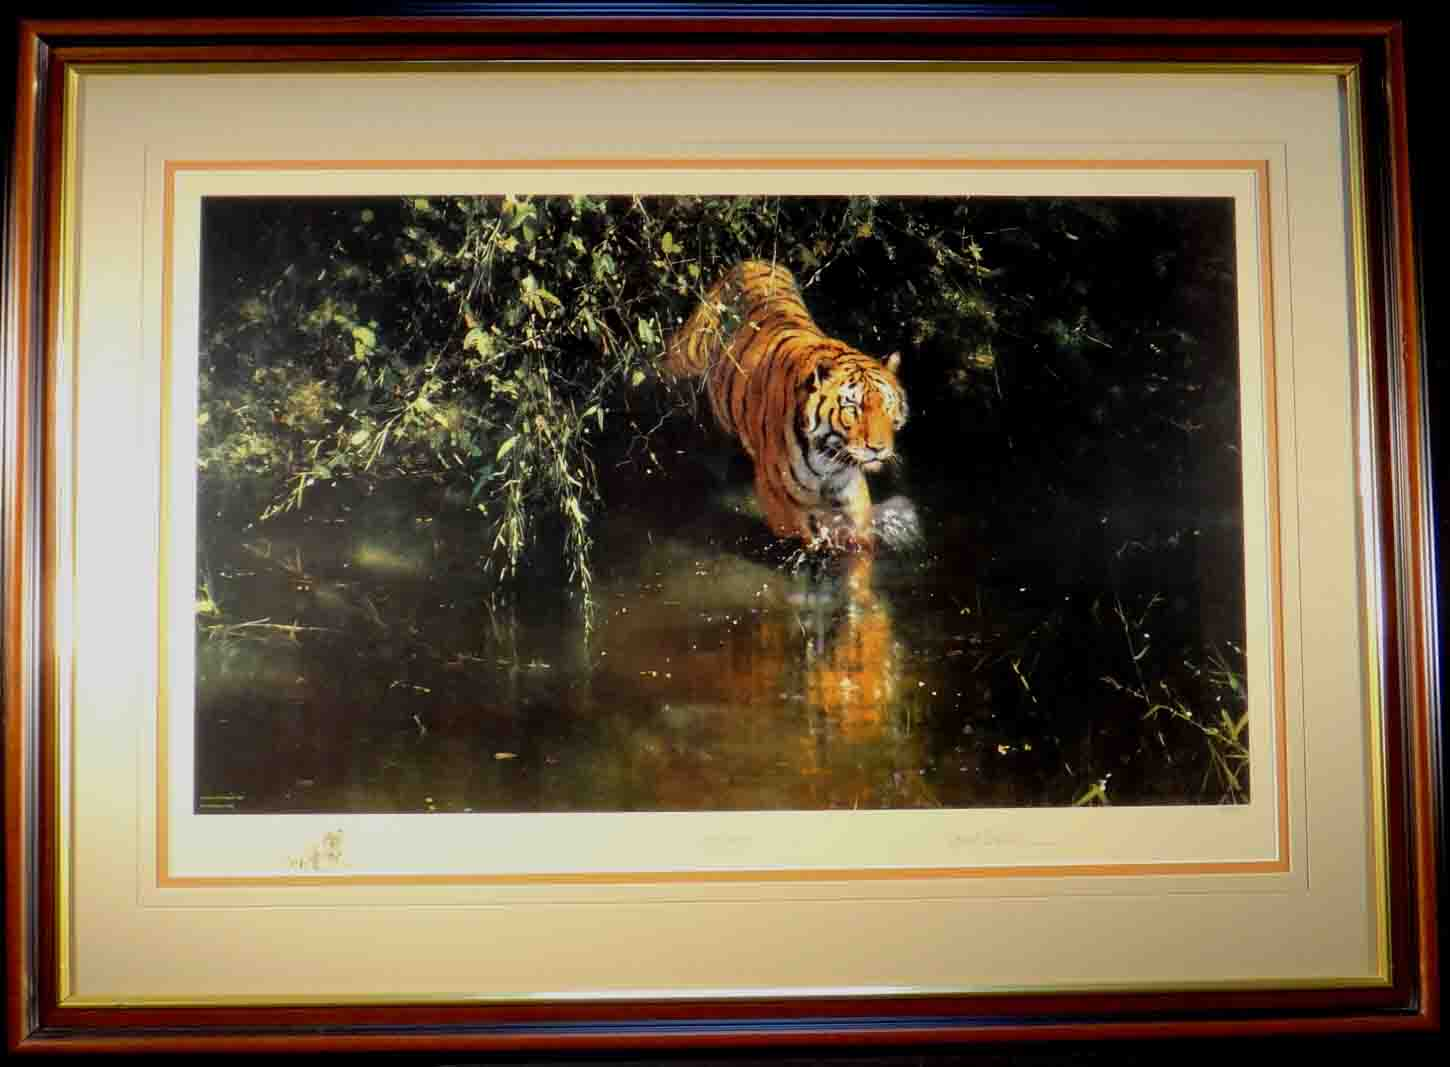 david shepherd, burning bright, tiger, signed limited edition print